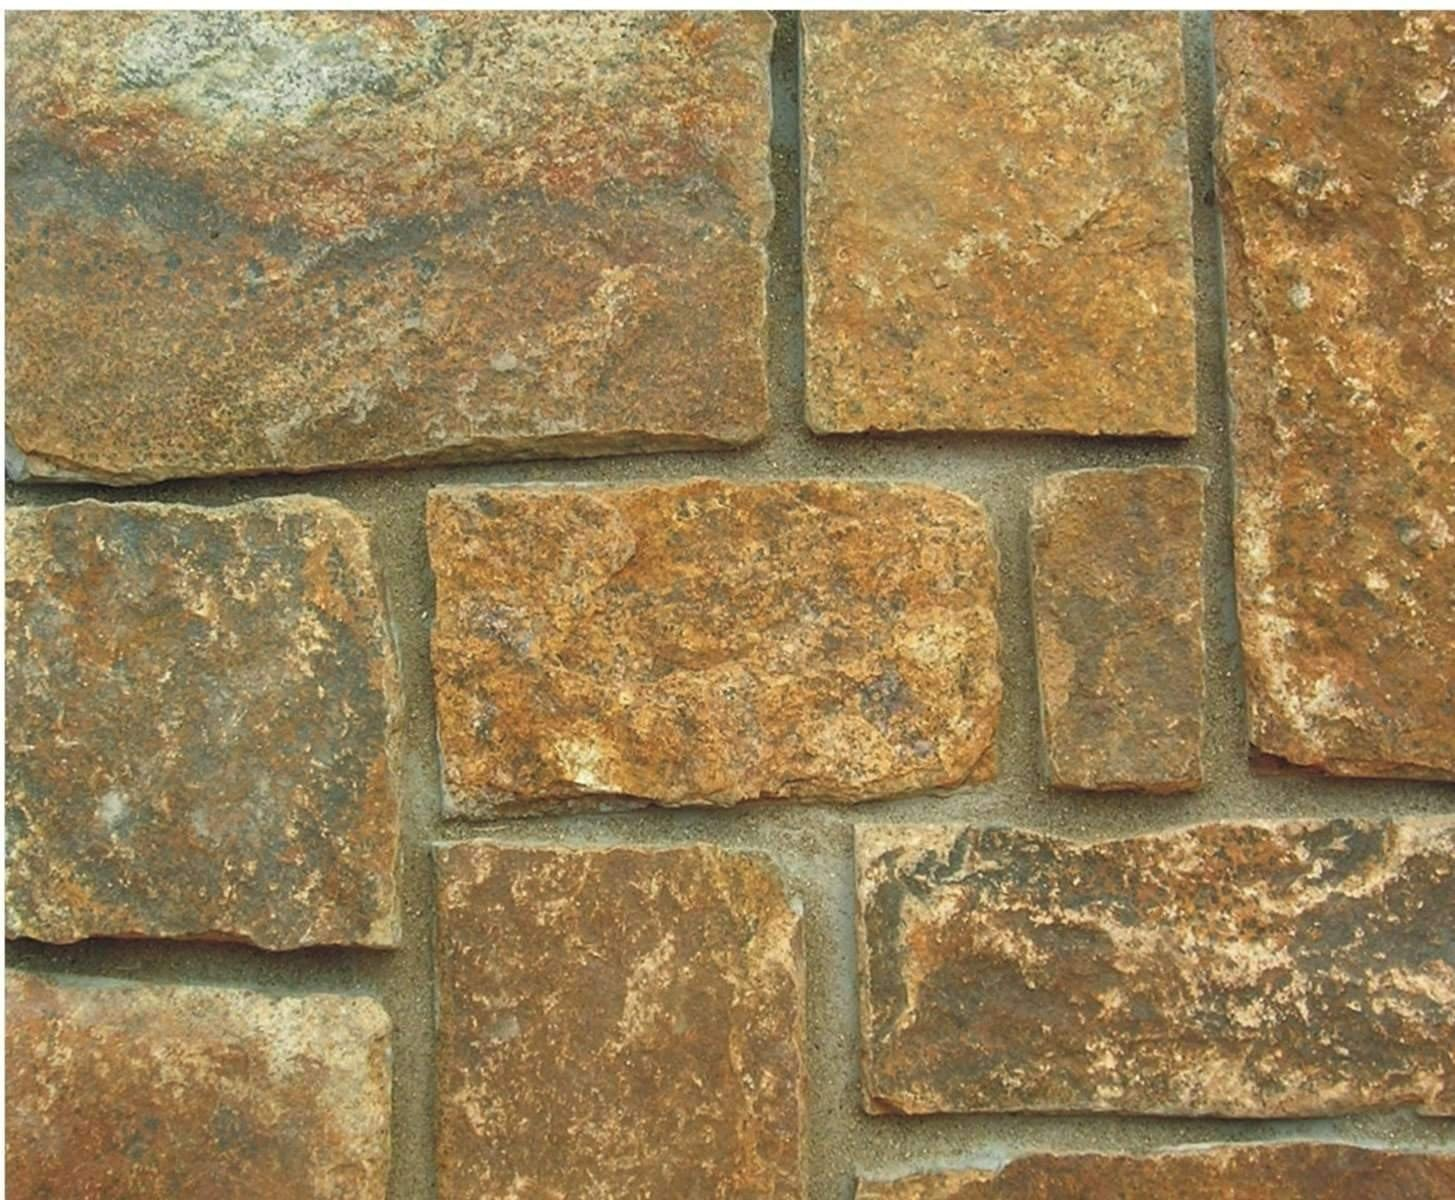 Old Den - Rough Cut Slate cheap stone veneer clearance - Discount Stones wholesale stone veneer, cheap brick veneer, cultured stone for sale